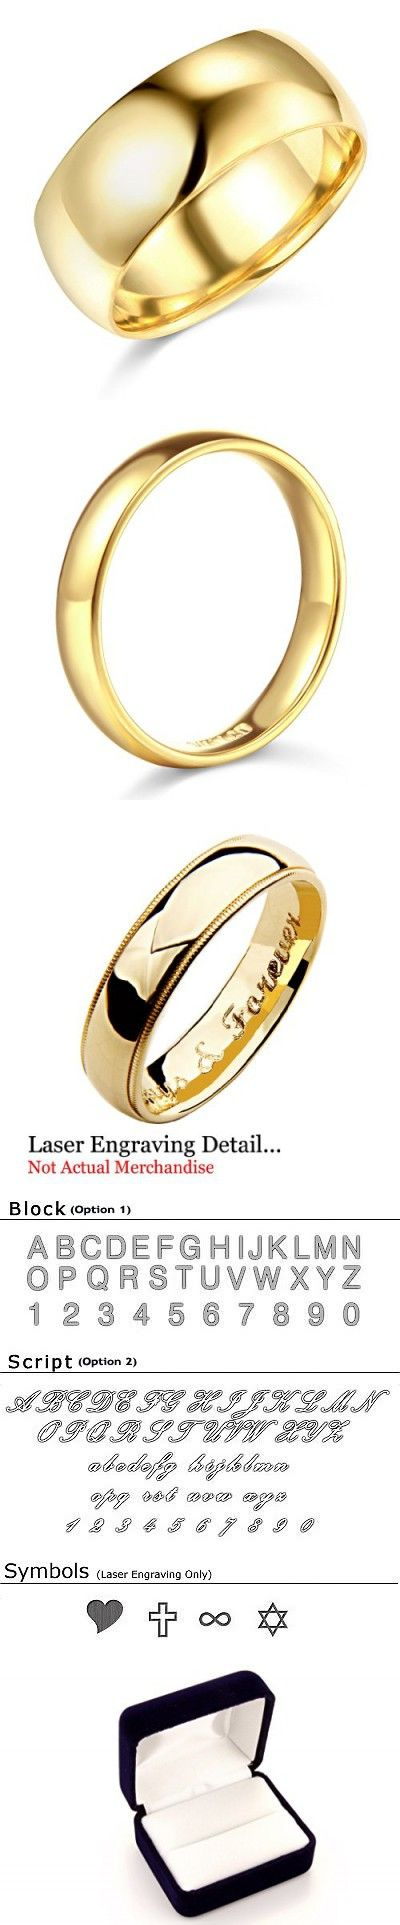 Laser Engraving Service 14k Yellow Or White Gold 8mm Solid Comfort Fit Plain Wedding Band Laser Engraving Wedding Bands White Gold